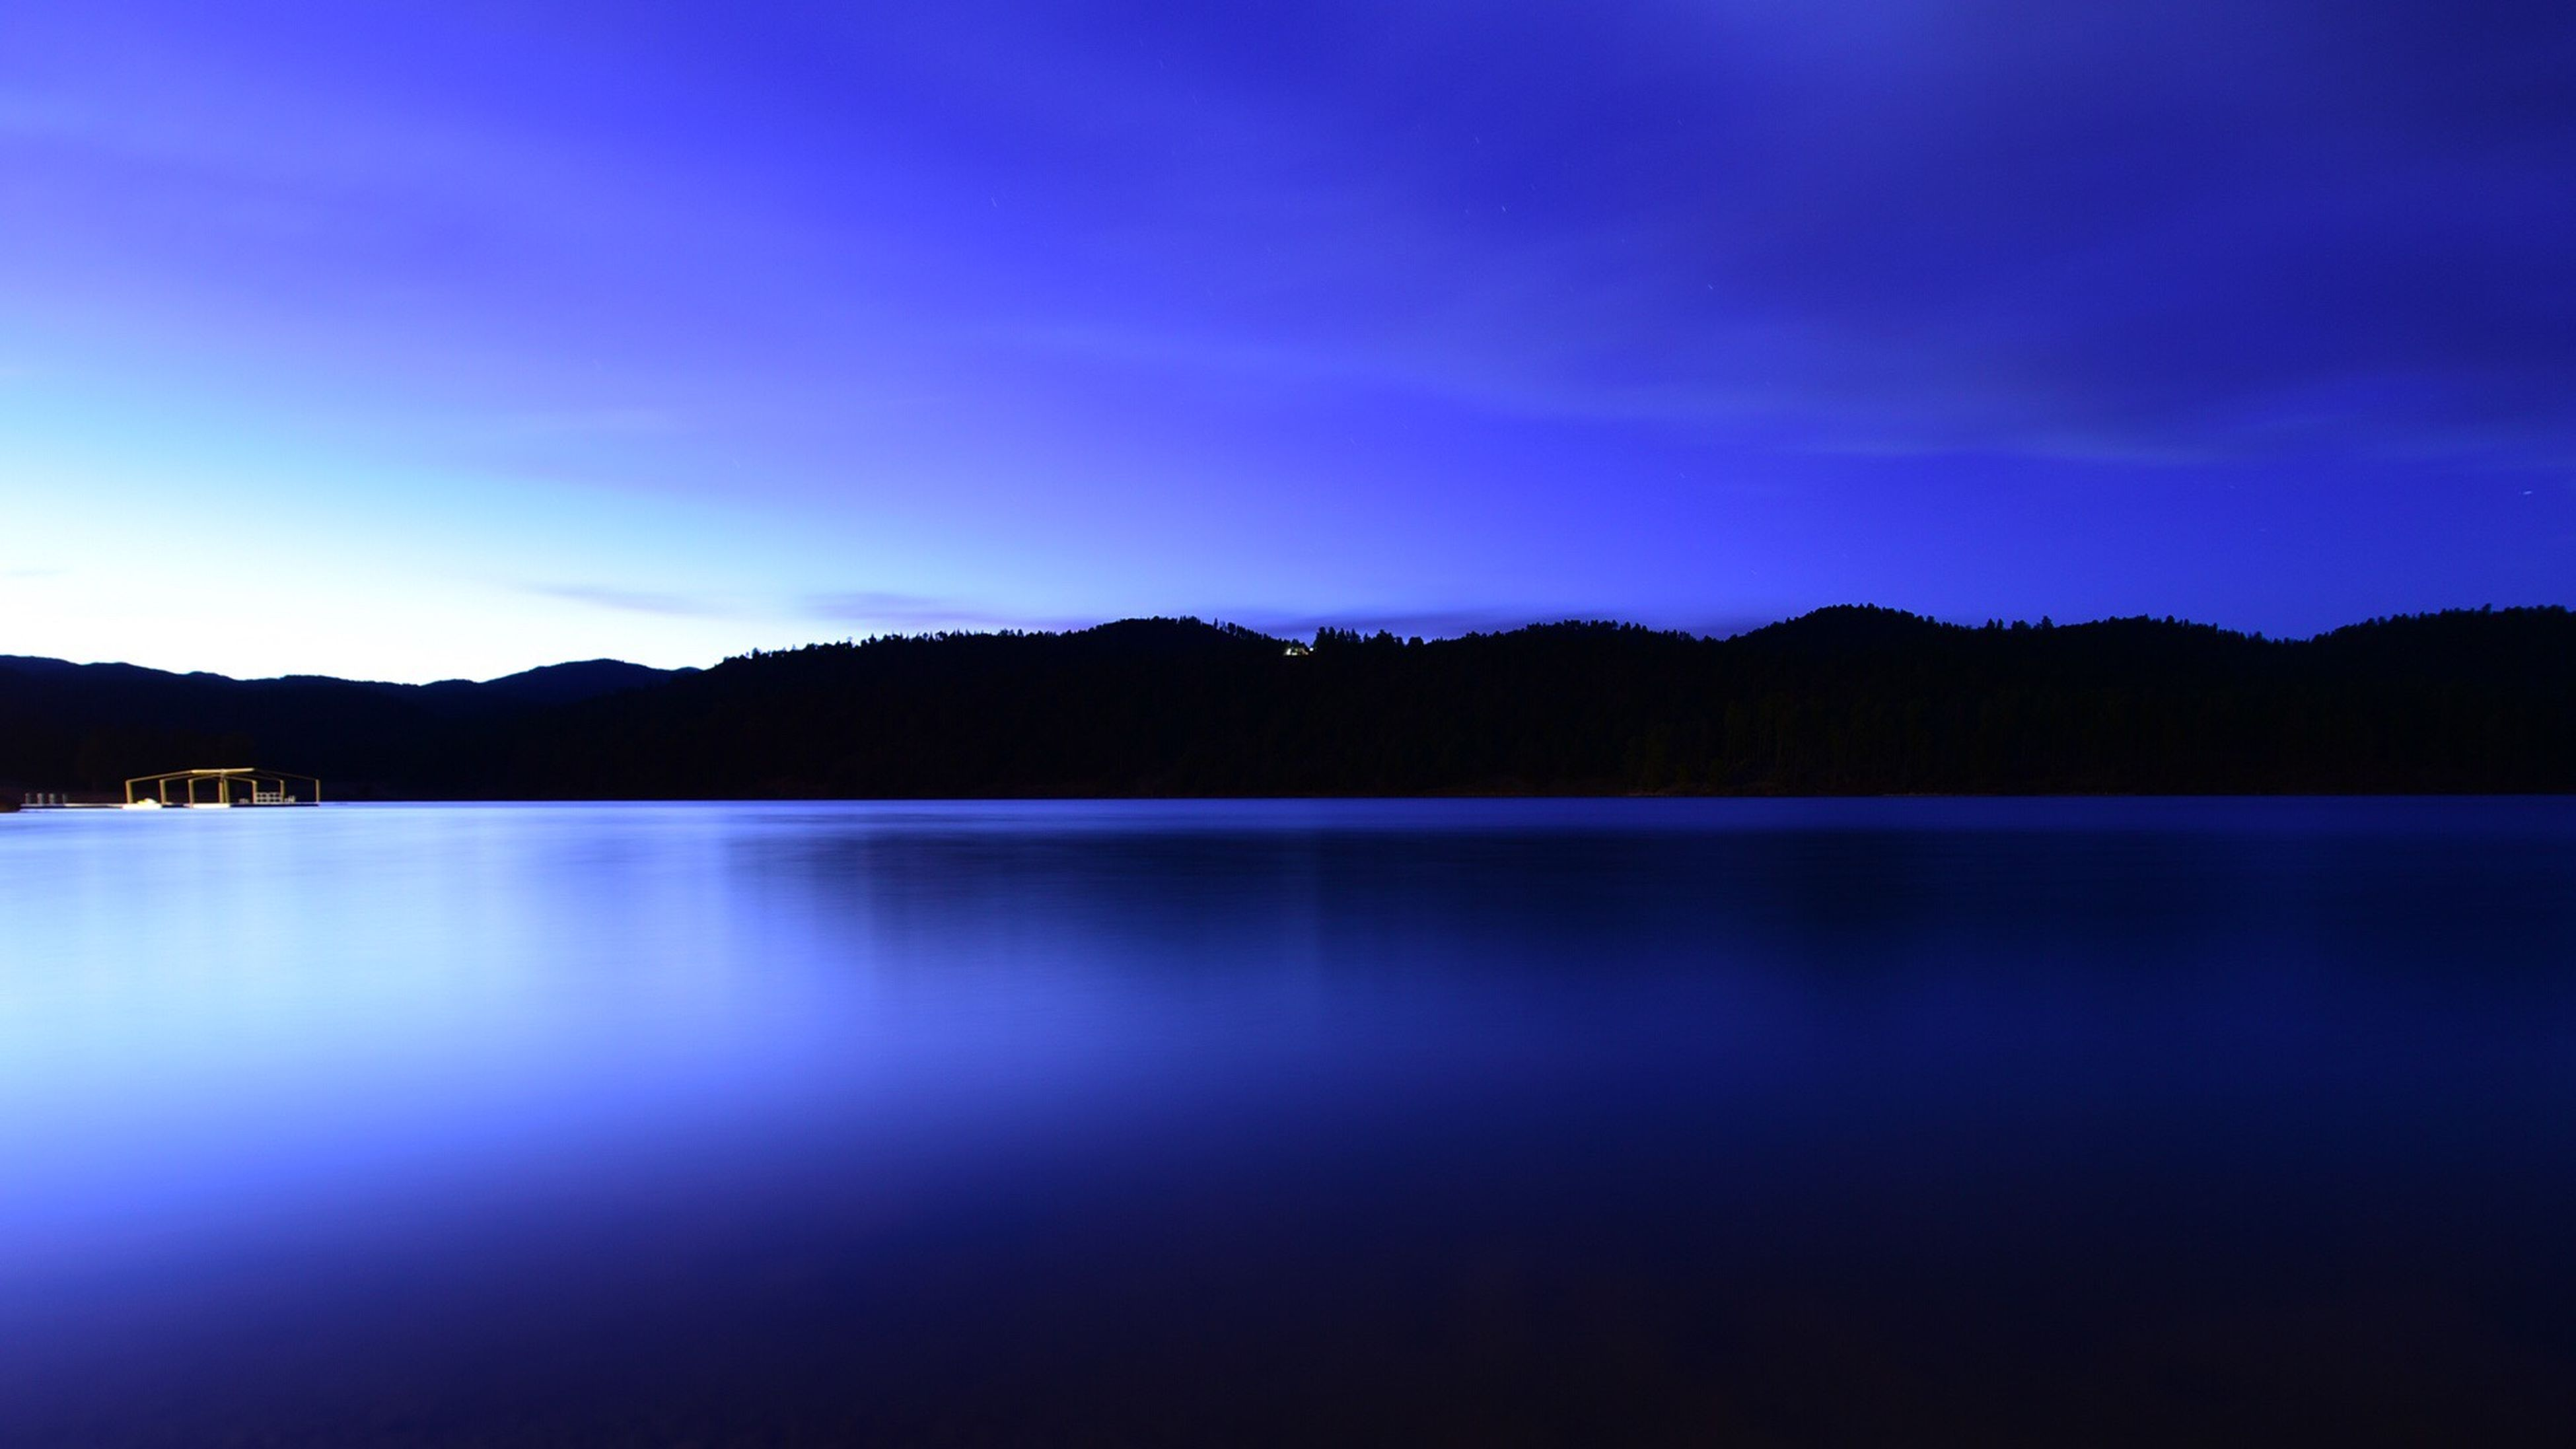 tranquil scene, blue, water, scenics, tranquility, silhouette, reflection, waterfront, lake, beauty in nature, calm, mountain, nature, idyllic, sky, majestic, cloud, countryside, non-urban scene, outdoors, no people, remote, outline, mountain range, solitude, sea, standing water, lakeside, blue color